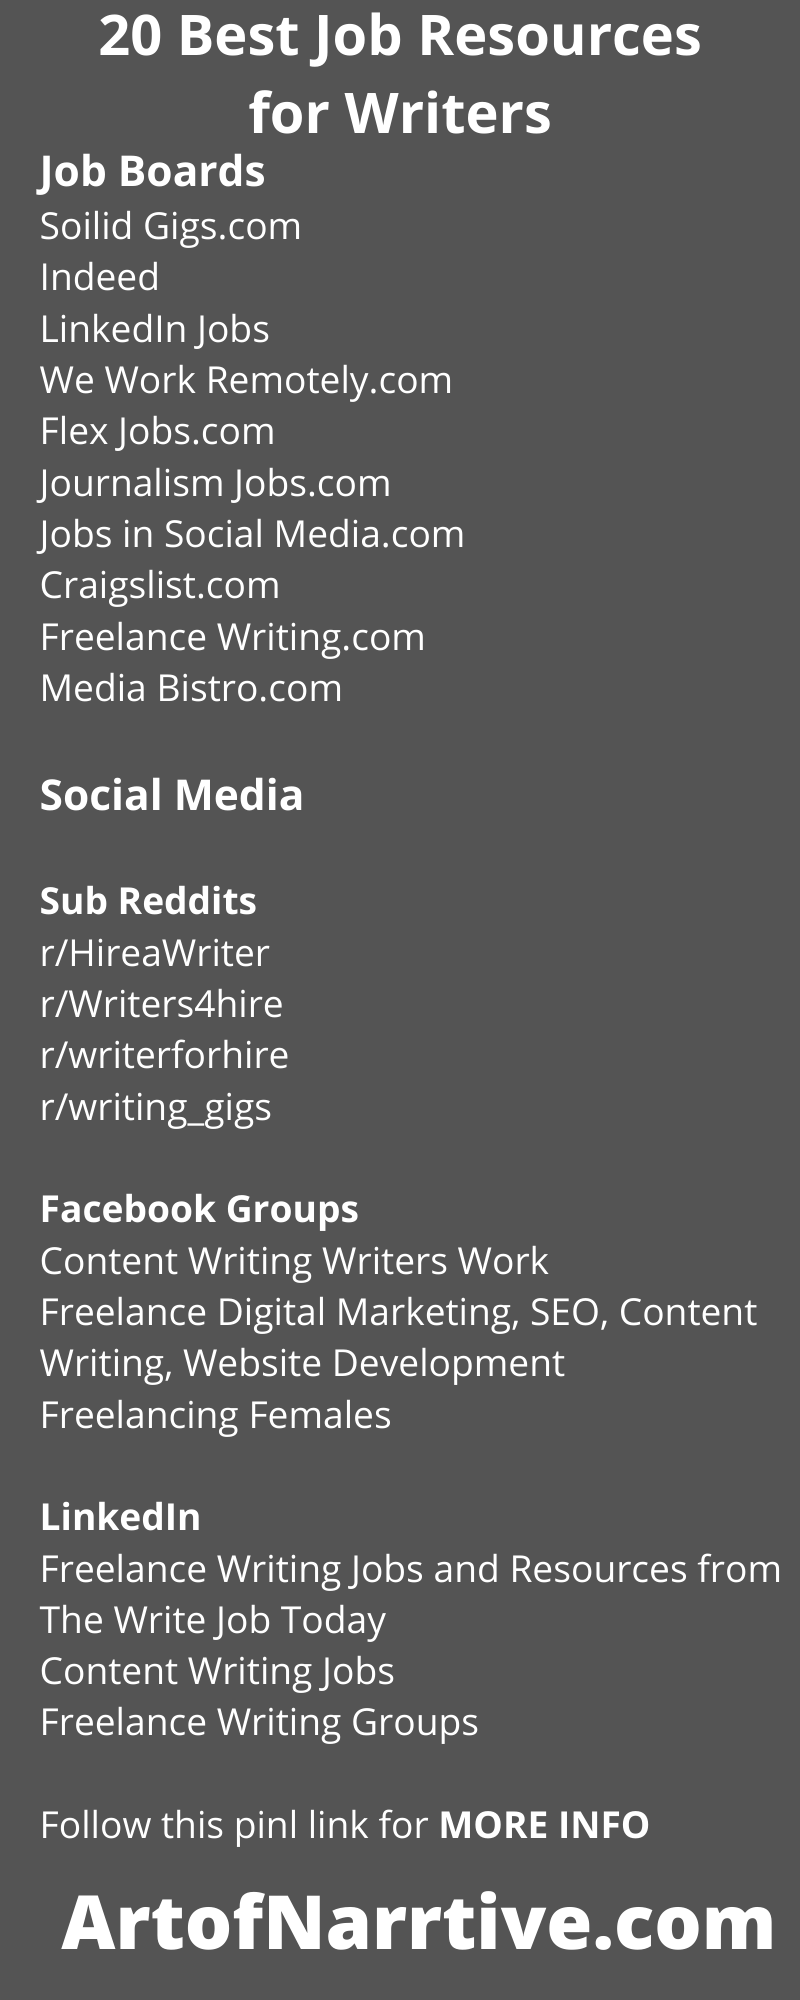 How to Find the Best Freelance Writing Jobs Online in 2020